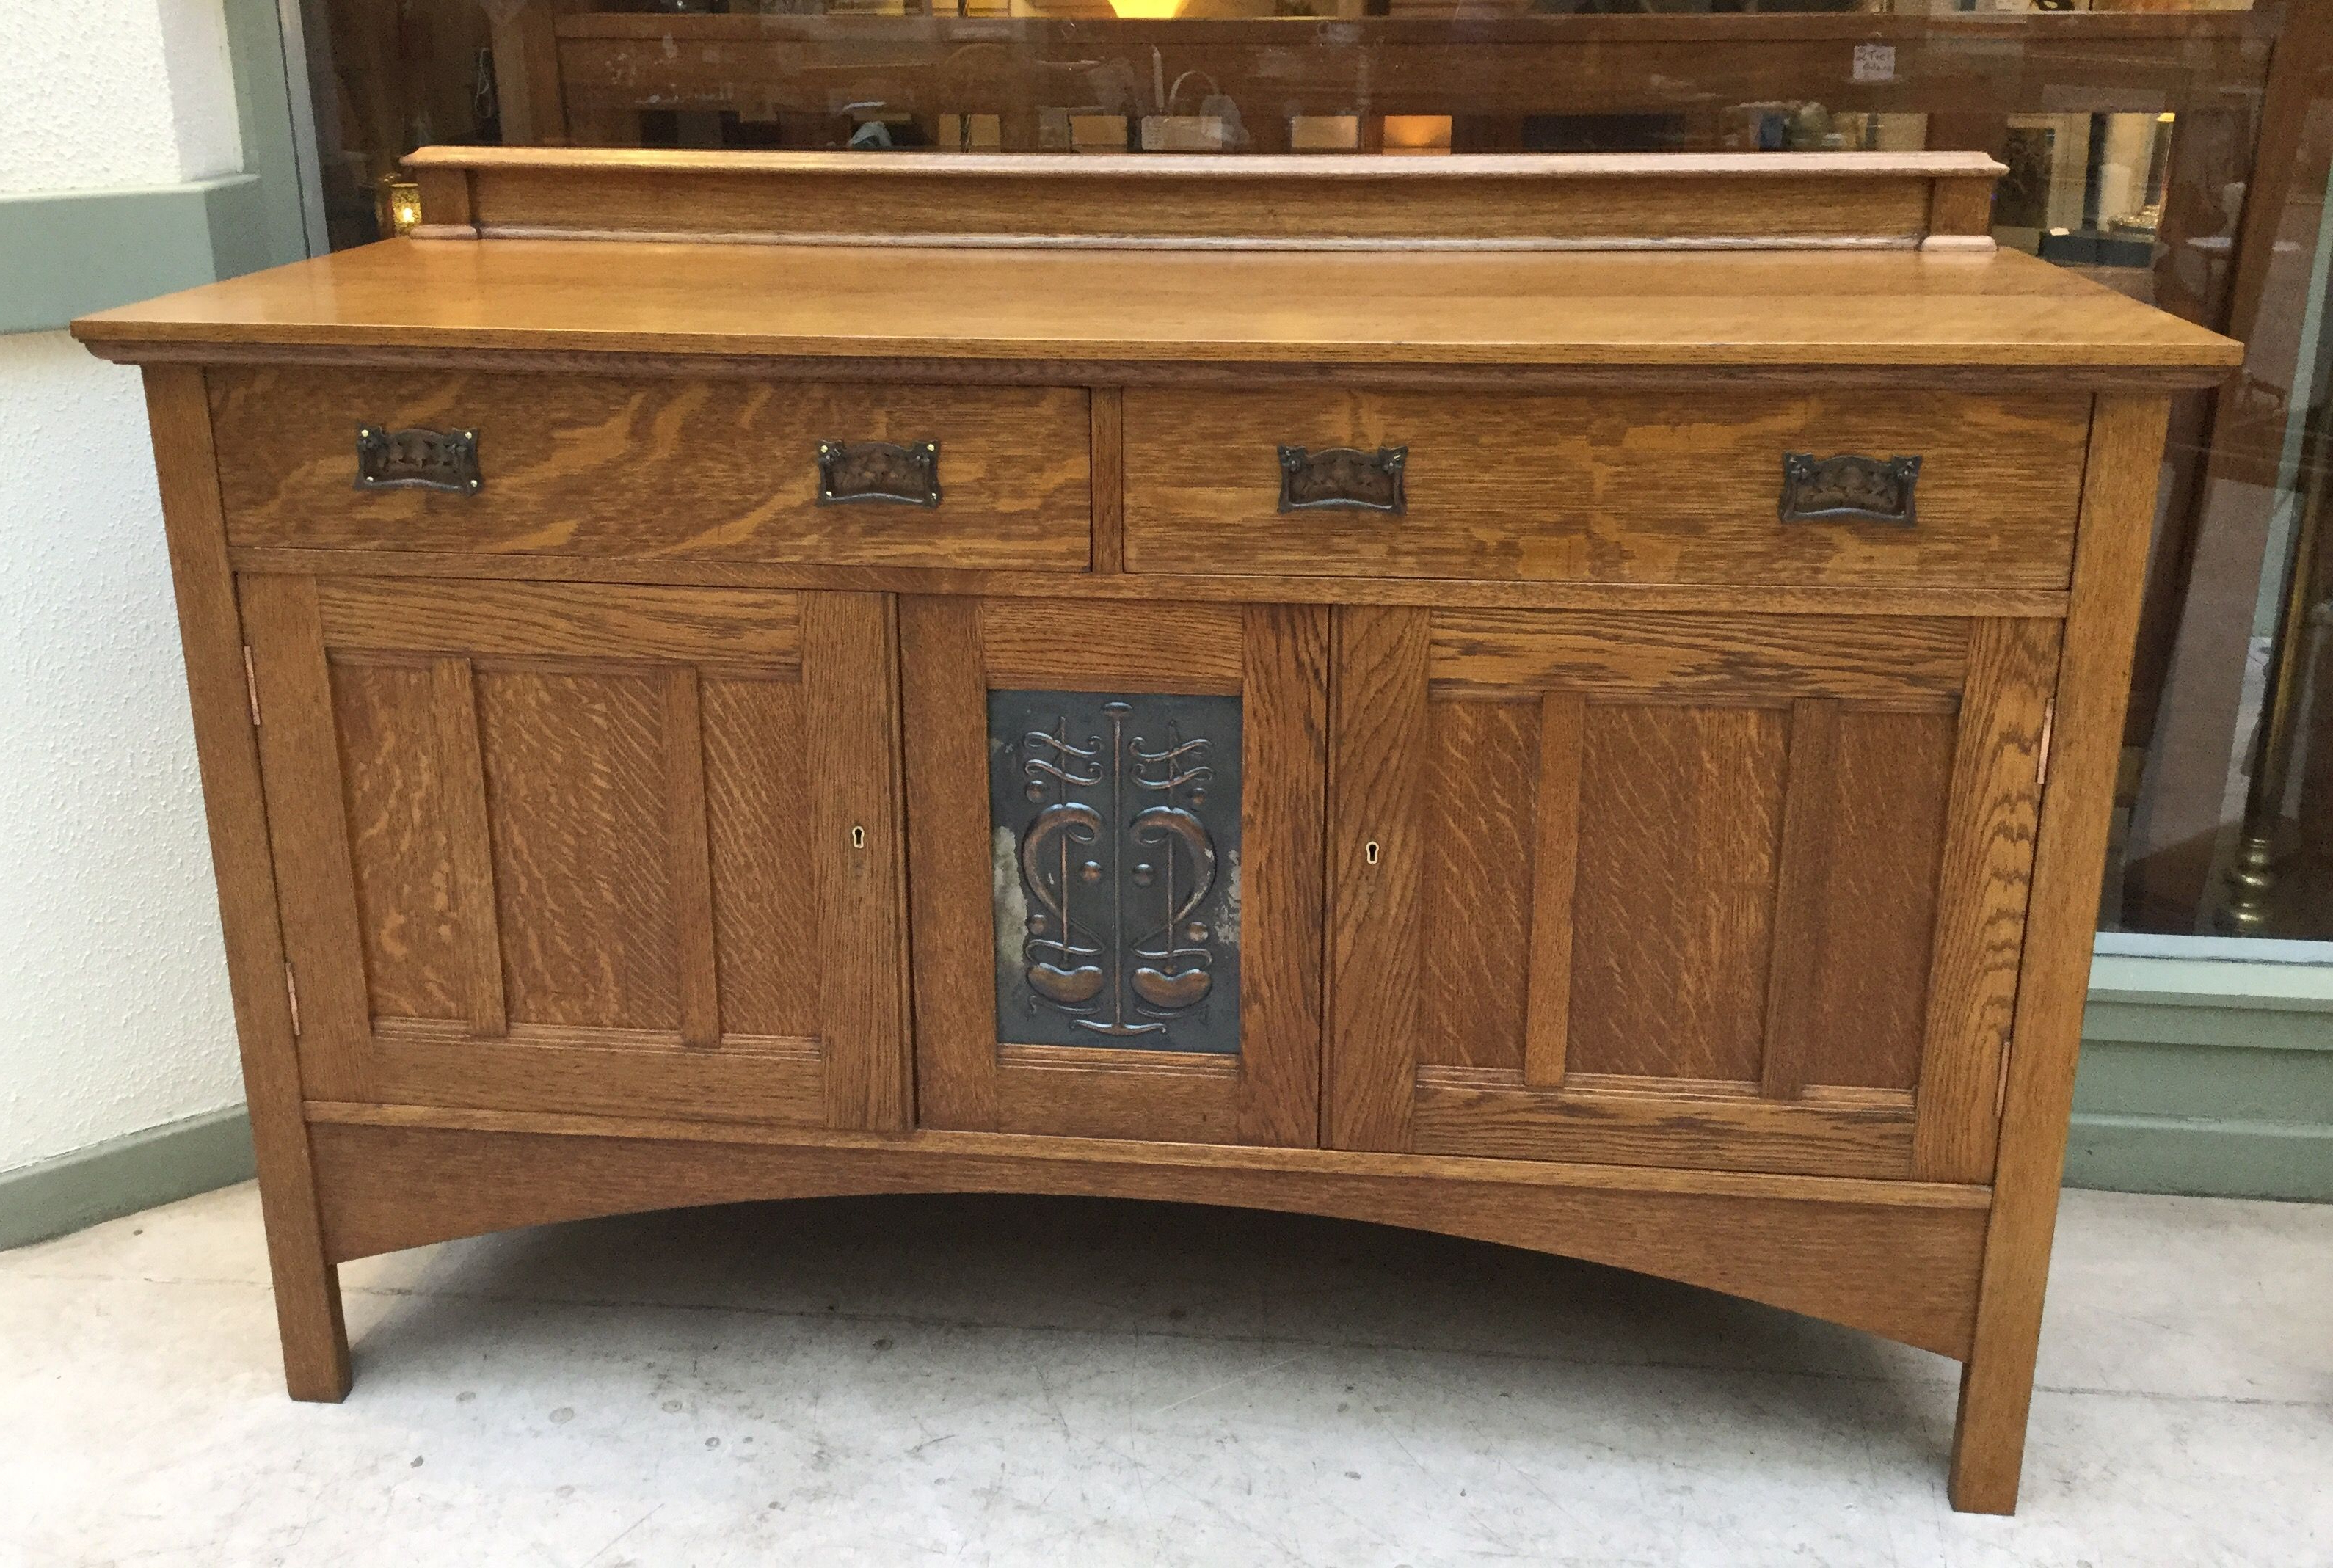 Oak Sideboard, With Original Beaten Copper Panel | Arts And Inside Ruskin Sideboards (View 15 of 20)